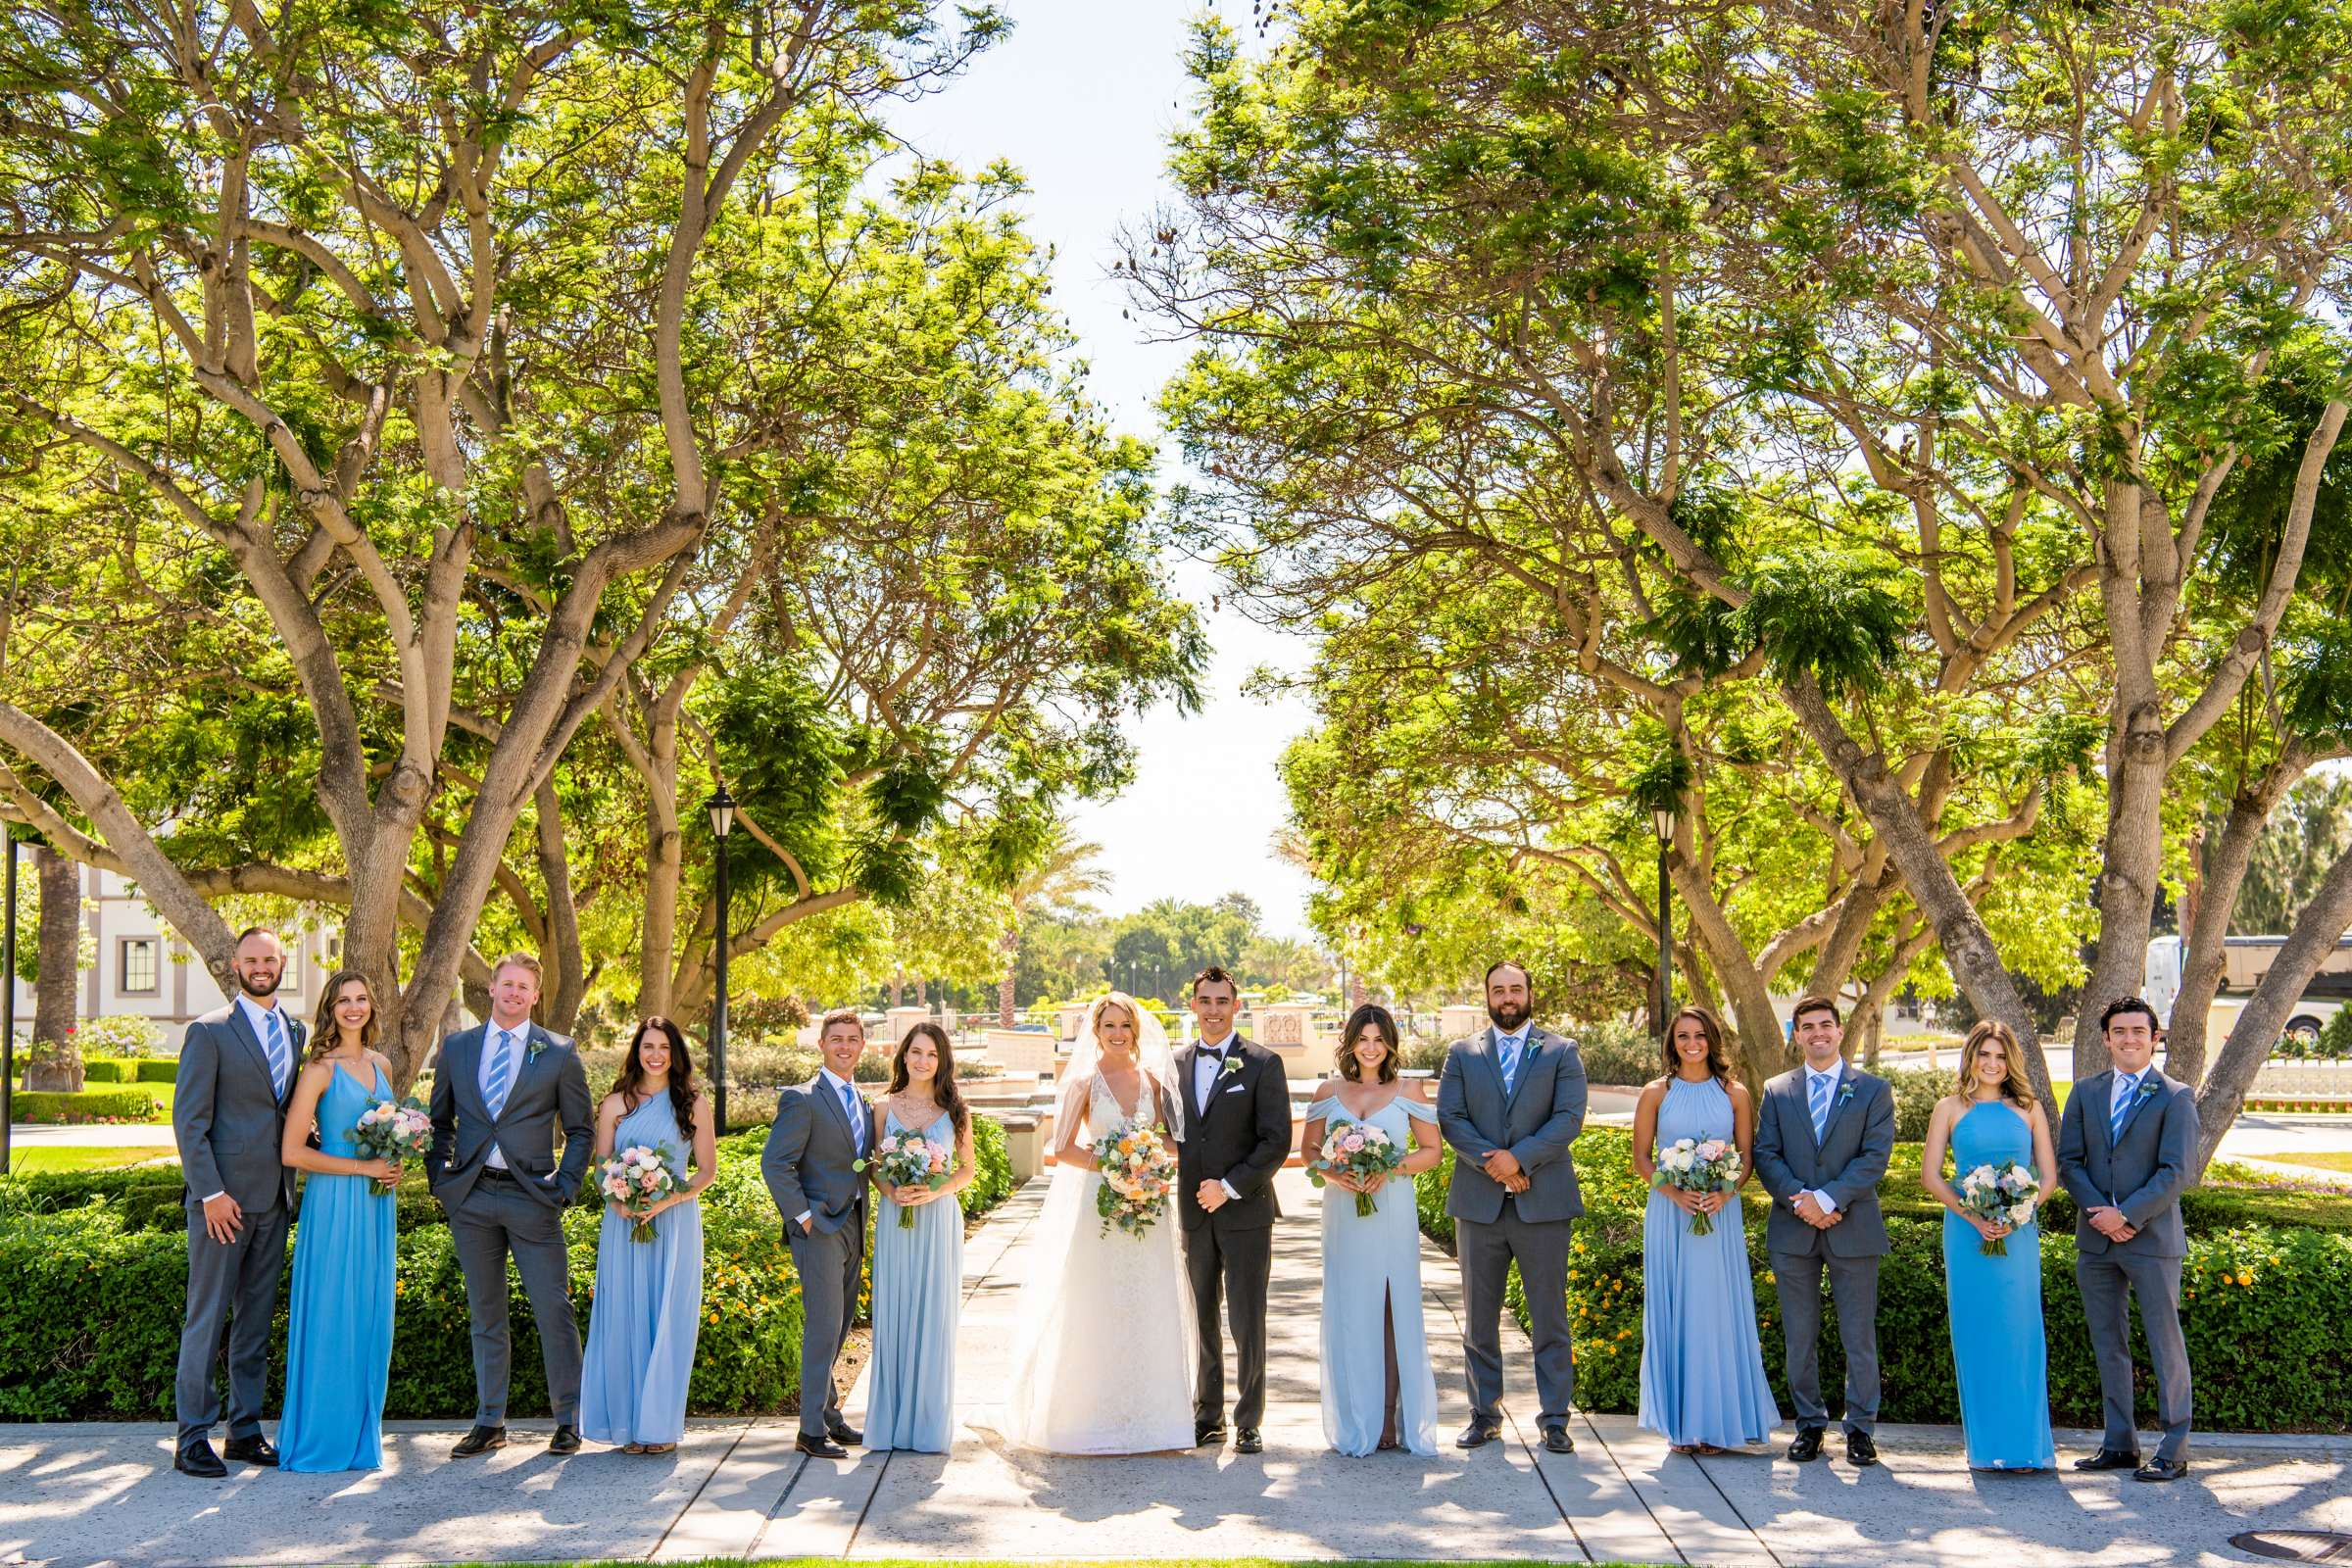 The Prado Wedding coordinated by Bliss Events, Sara and Marvin Wedding Photo #559478 by True Photography